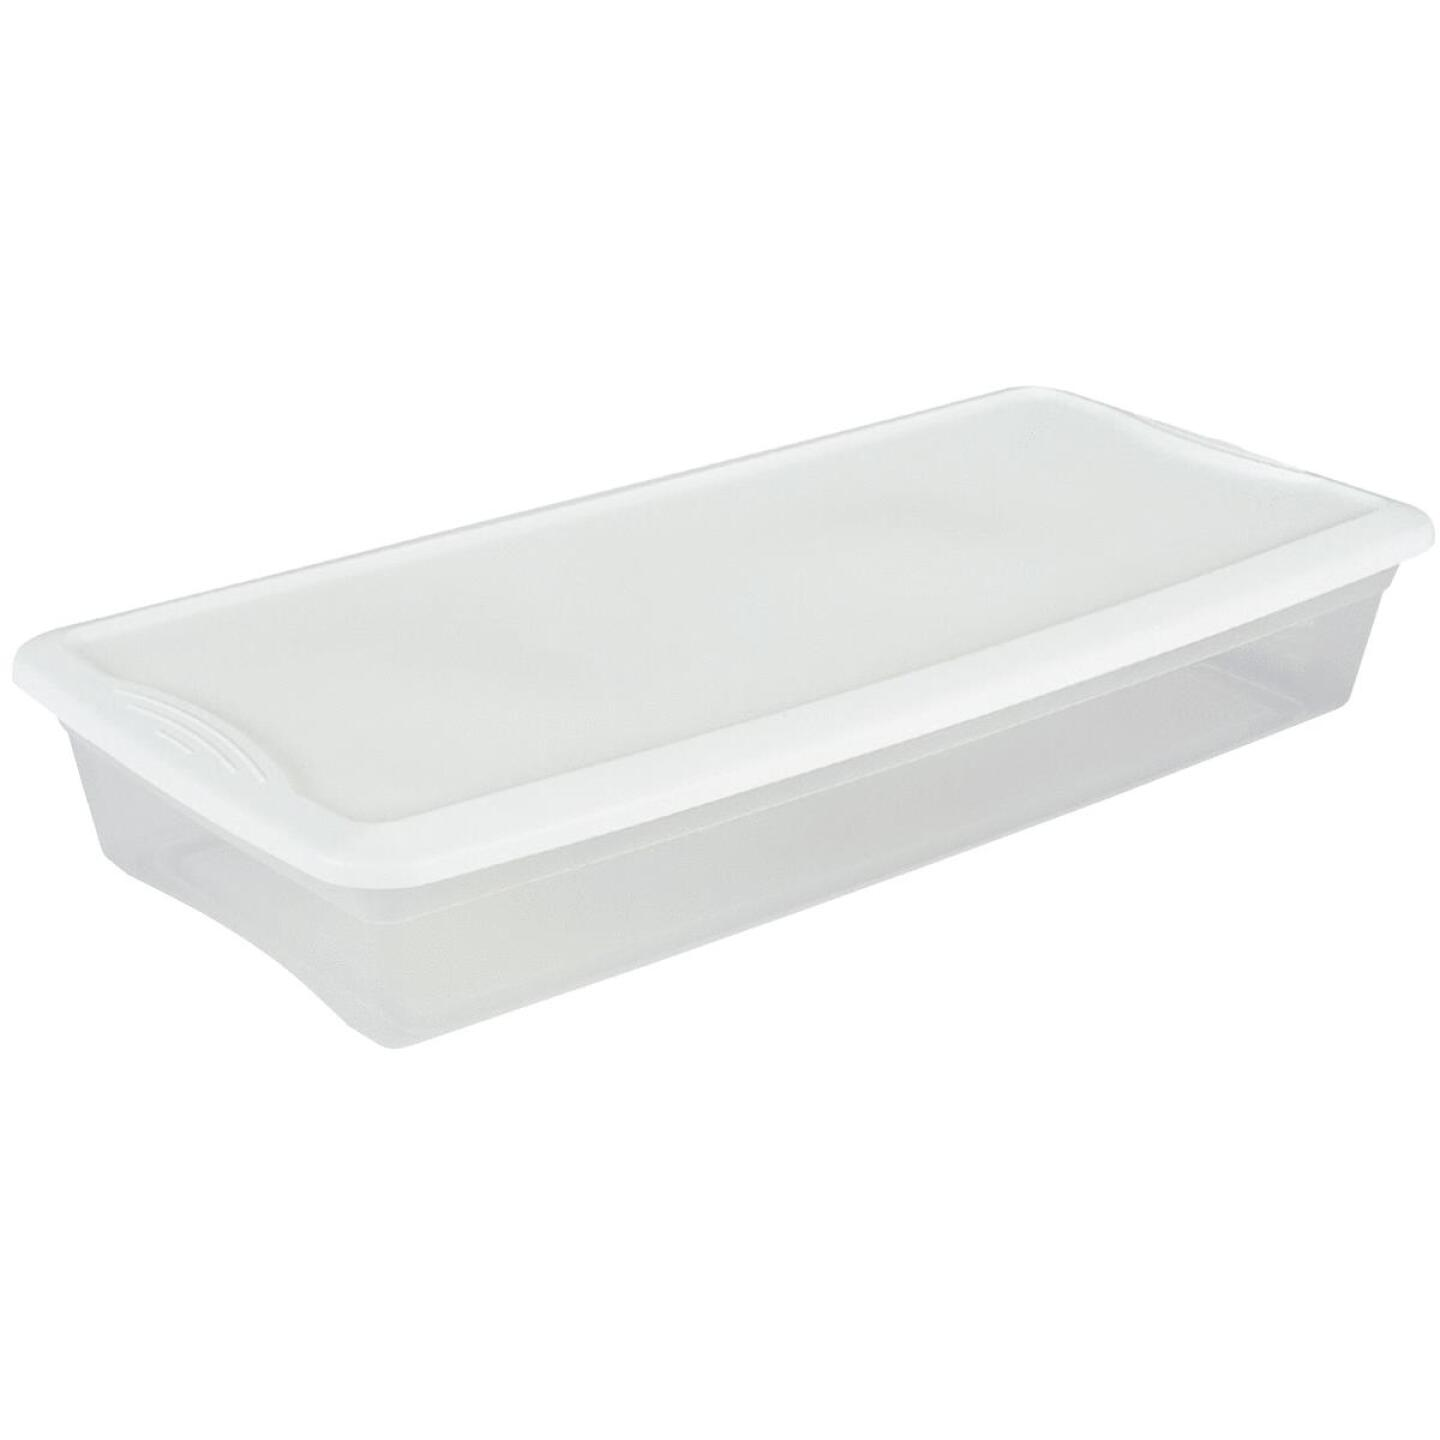 Sterilite Clear Storage 41 Qt. Underbed Box Image 1